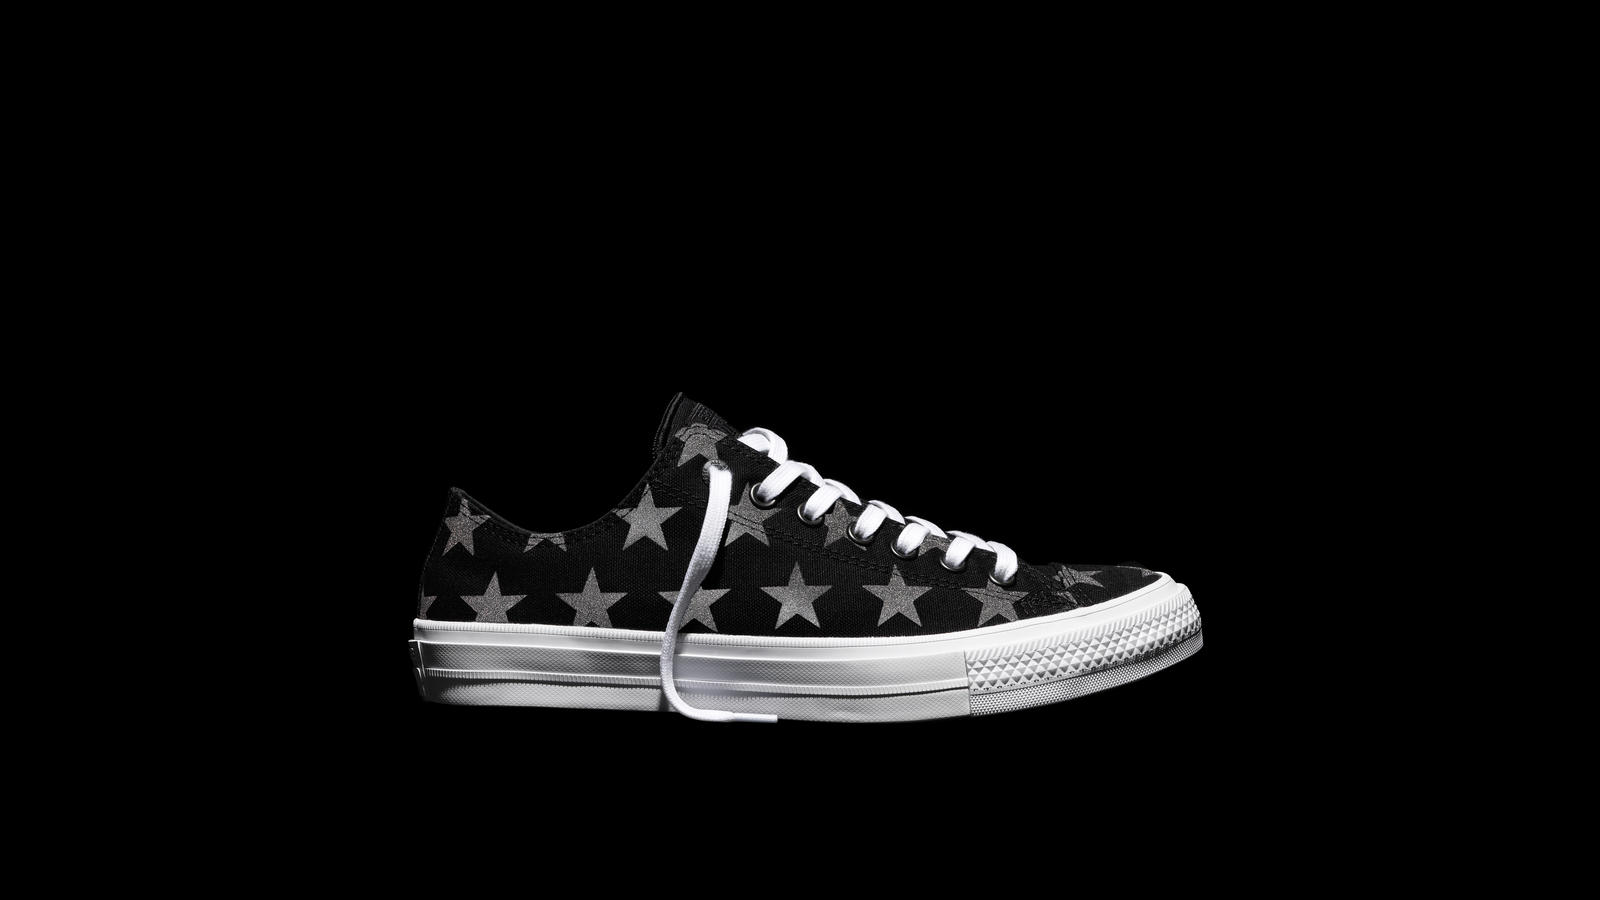 86d731baa54c LIGHT UP THE NIGHT WITH NEW CHUCK II REFLECTIVE PRINT COLLECTION ...